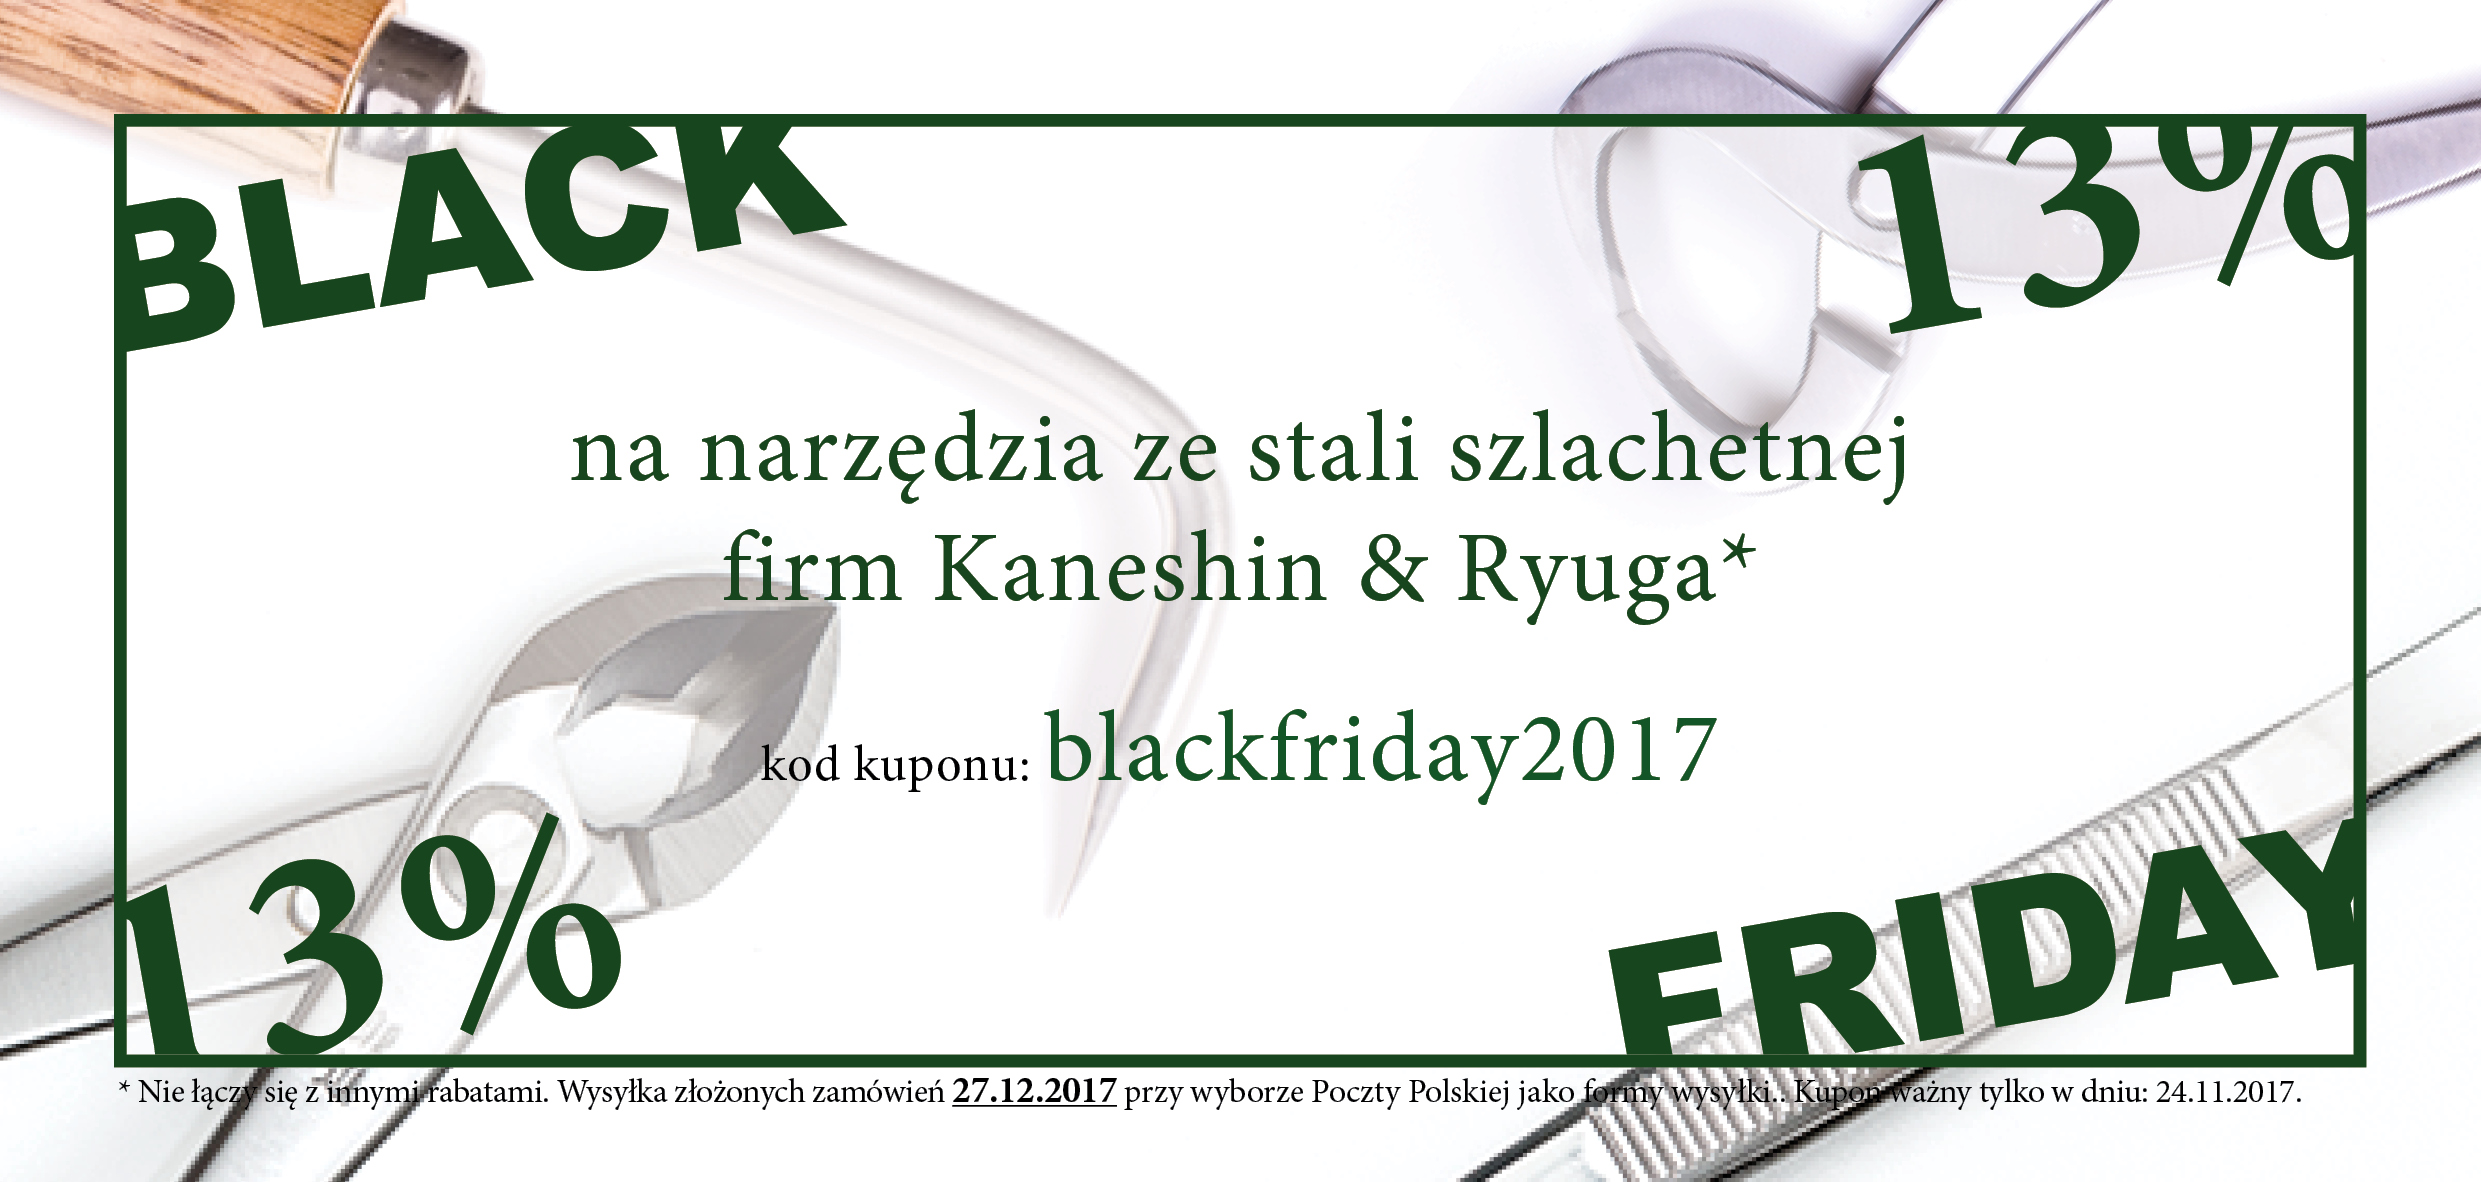 kupon_rabatowy_black_friday.jpg